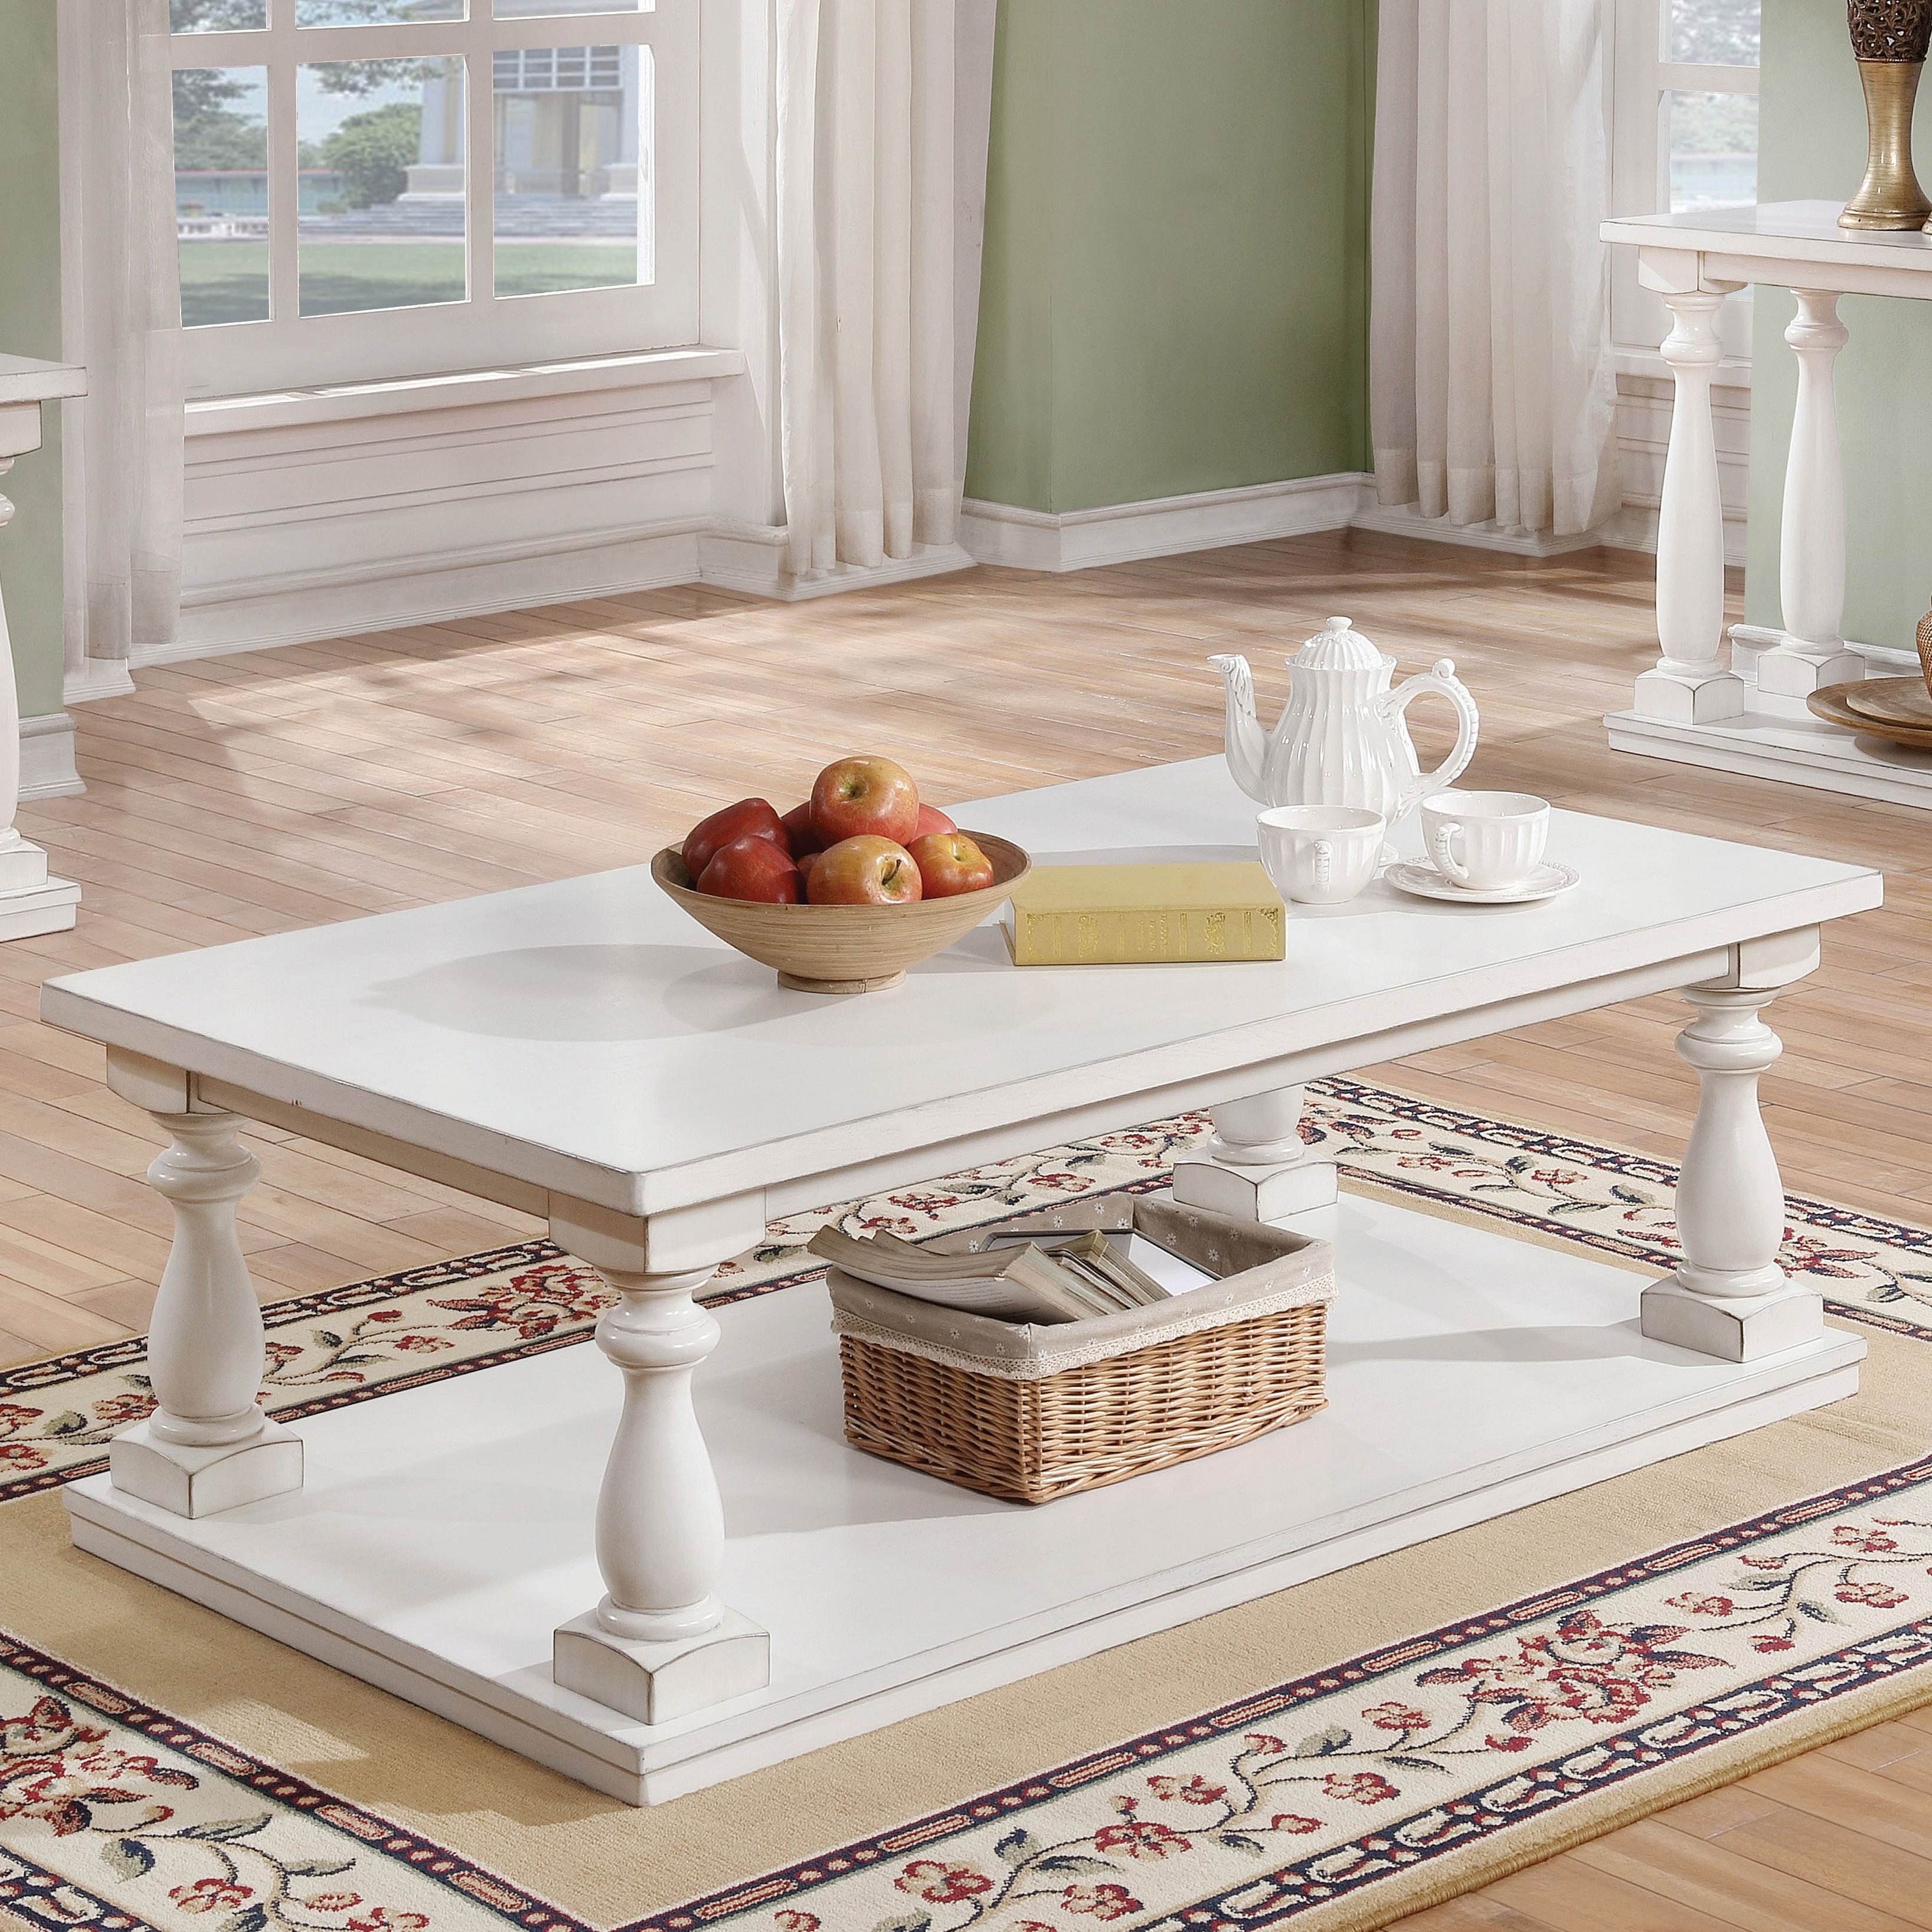 Newest Jessa Rustic Country 54 Inch Coffee Tables Inside Jessa Rustic Country 54 Inch Coffee Tablefoa (View 6 of 20)